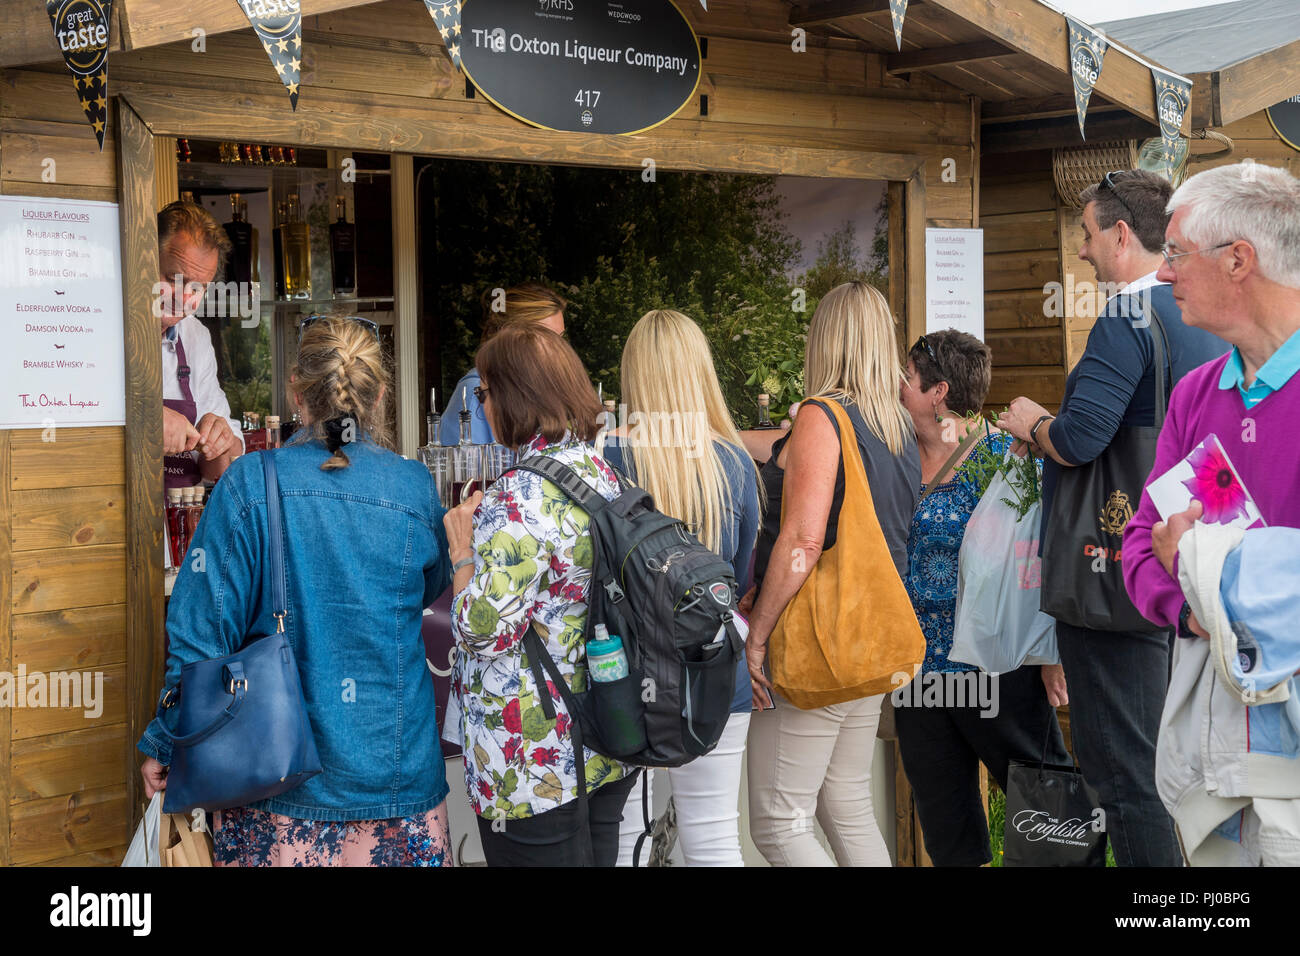 People being served, buying & queuing for handmade liqueurs in glass bottles at trade stand hut - RHS Chatsworth Flower Show, Derbyshire, England, UK. - Stock Image